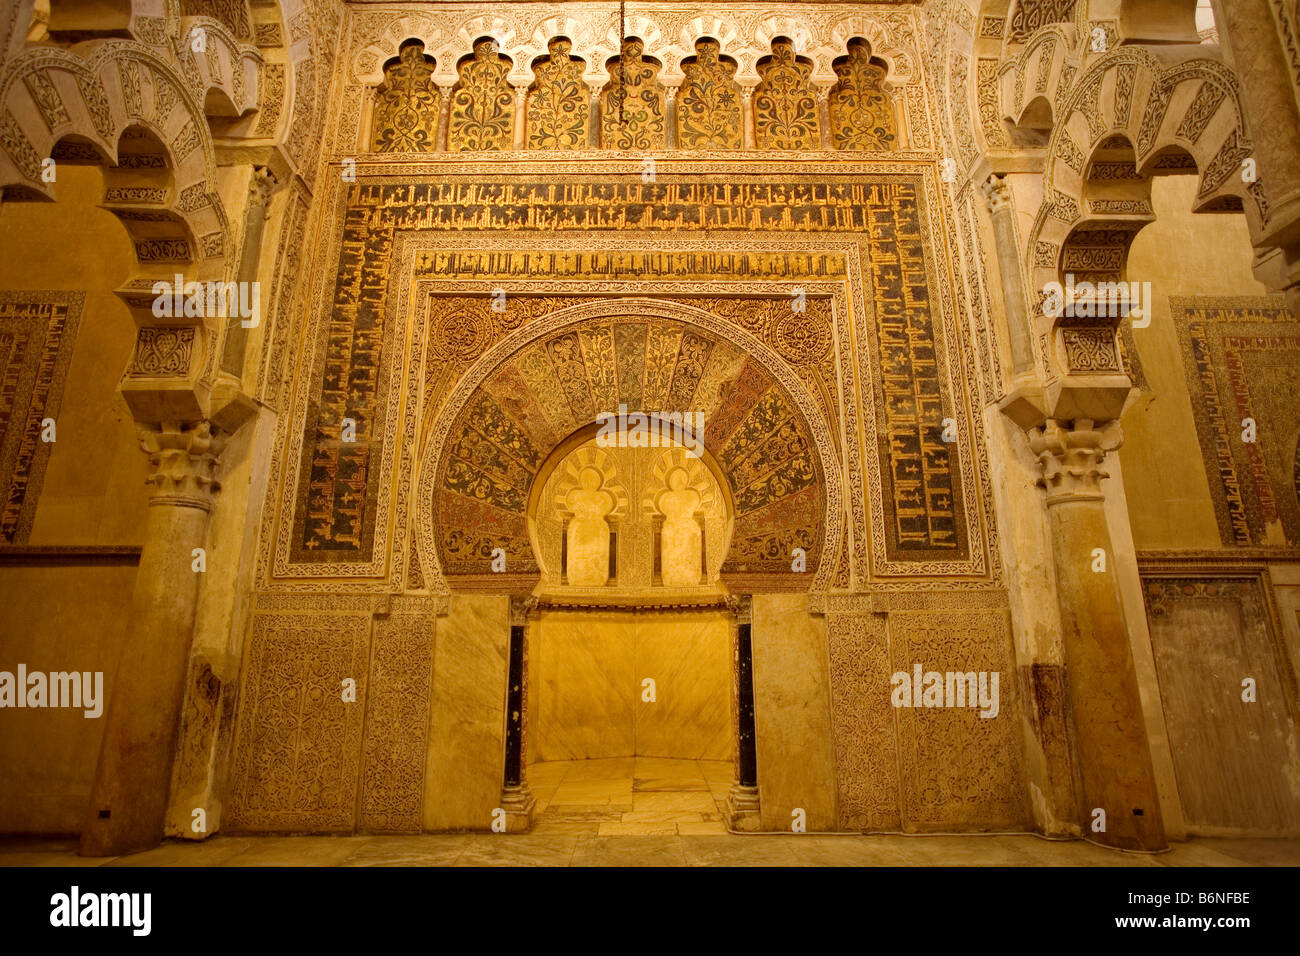 mihrab of the mosque cathedral cordova andalucia españamihrab de la mezquita catedral de cordoba andalucia españa Stock Photo